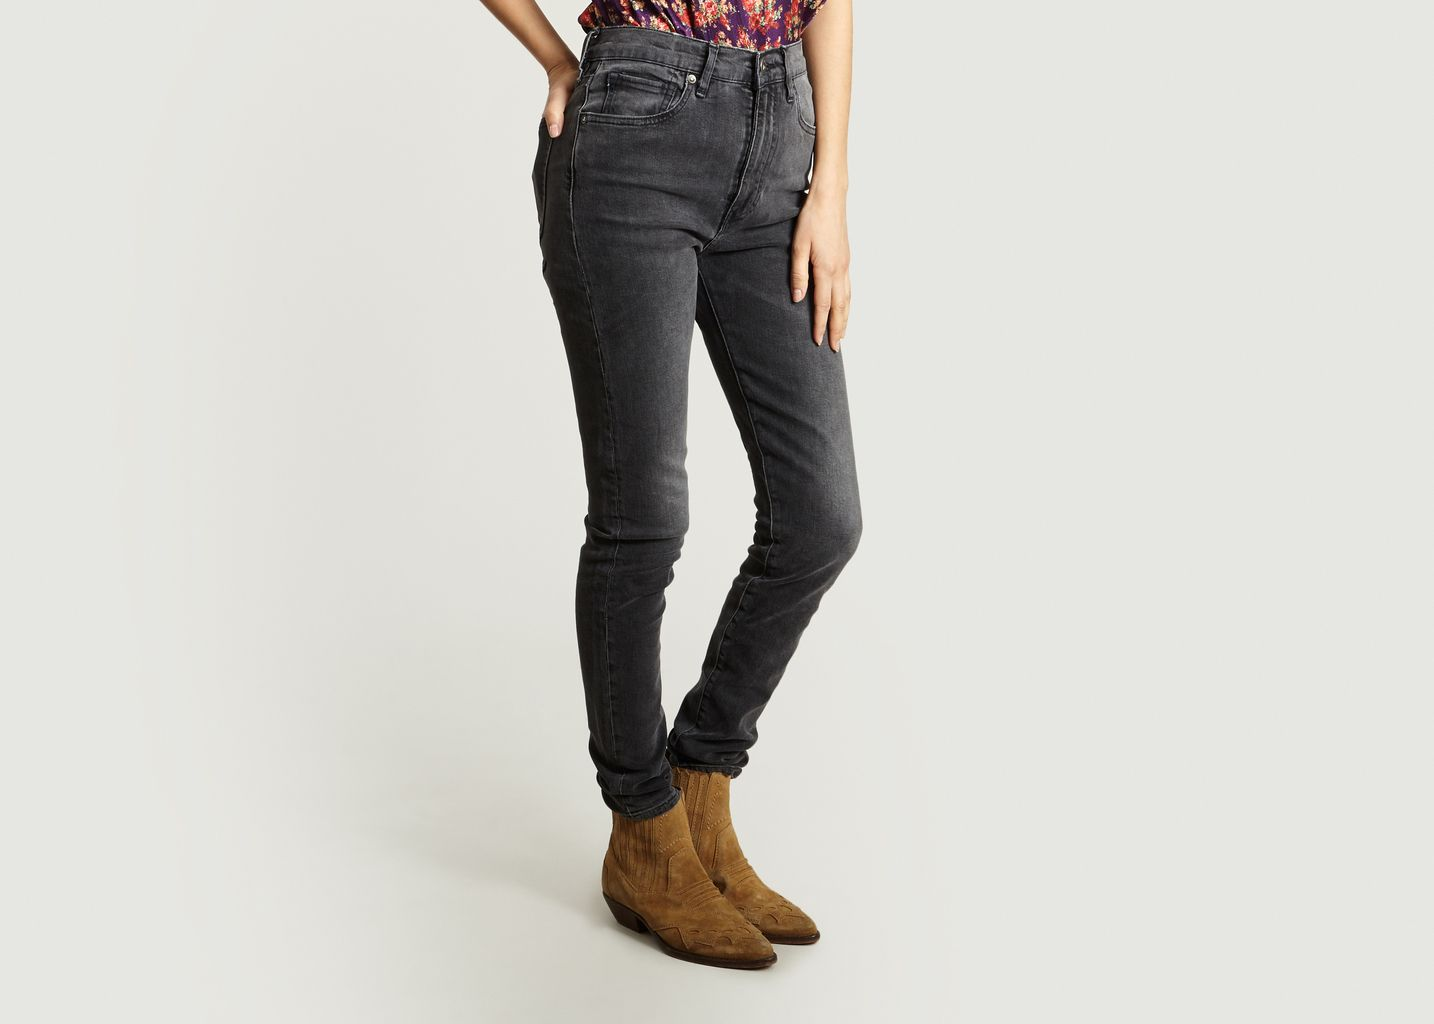 Jean Silver High Skinny - Levi's Made and Crafted